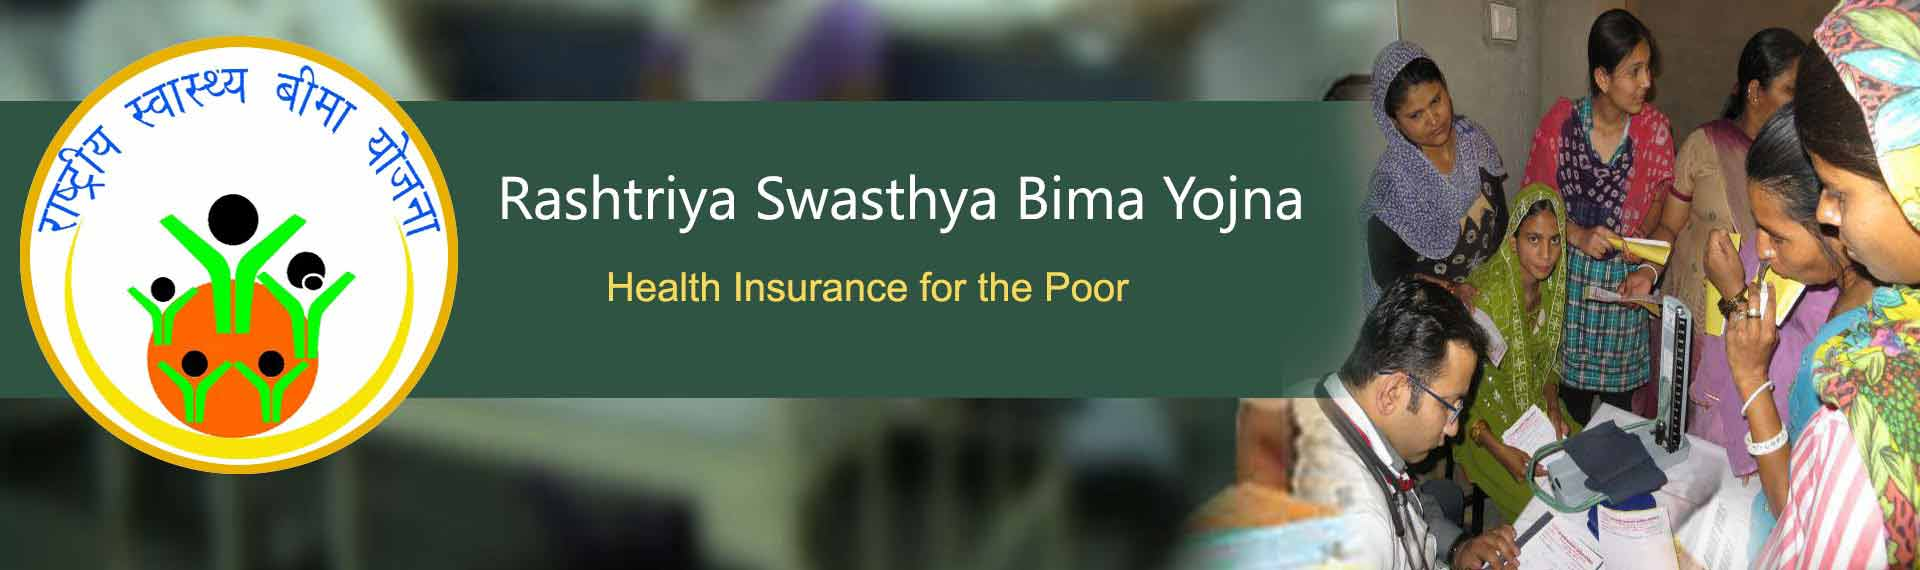 What Is Rashtriya Swasthya Bima Yojana (RSBY)